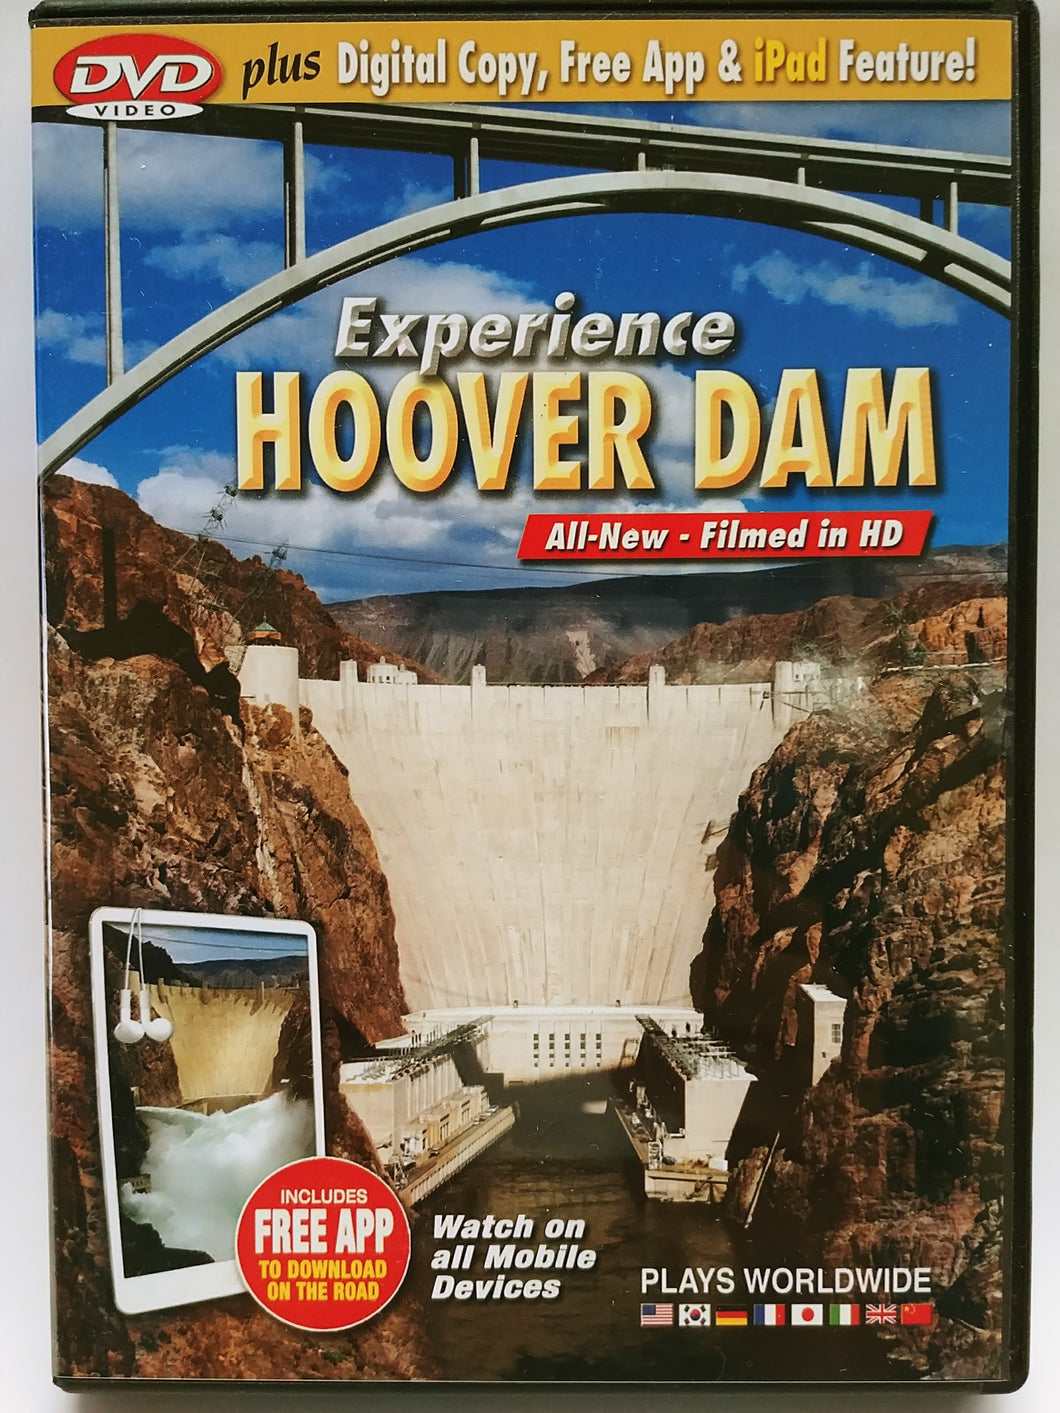 Experience Hoover Dam DVD PLUS digital copy